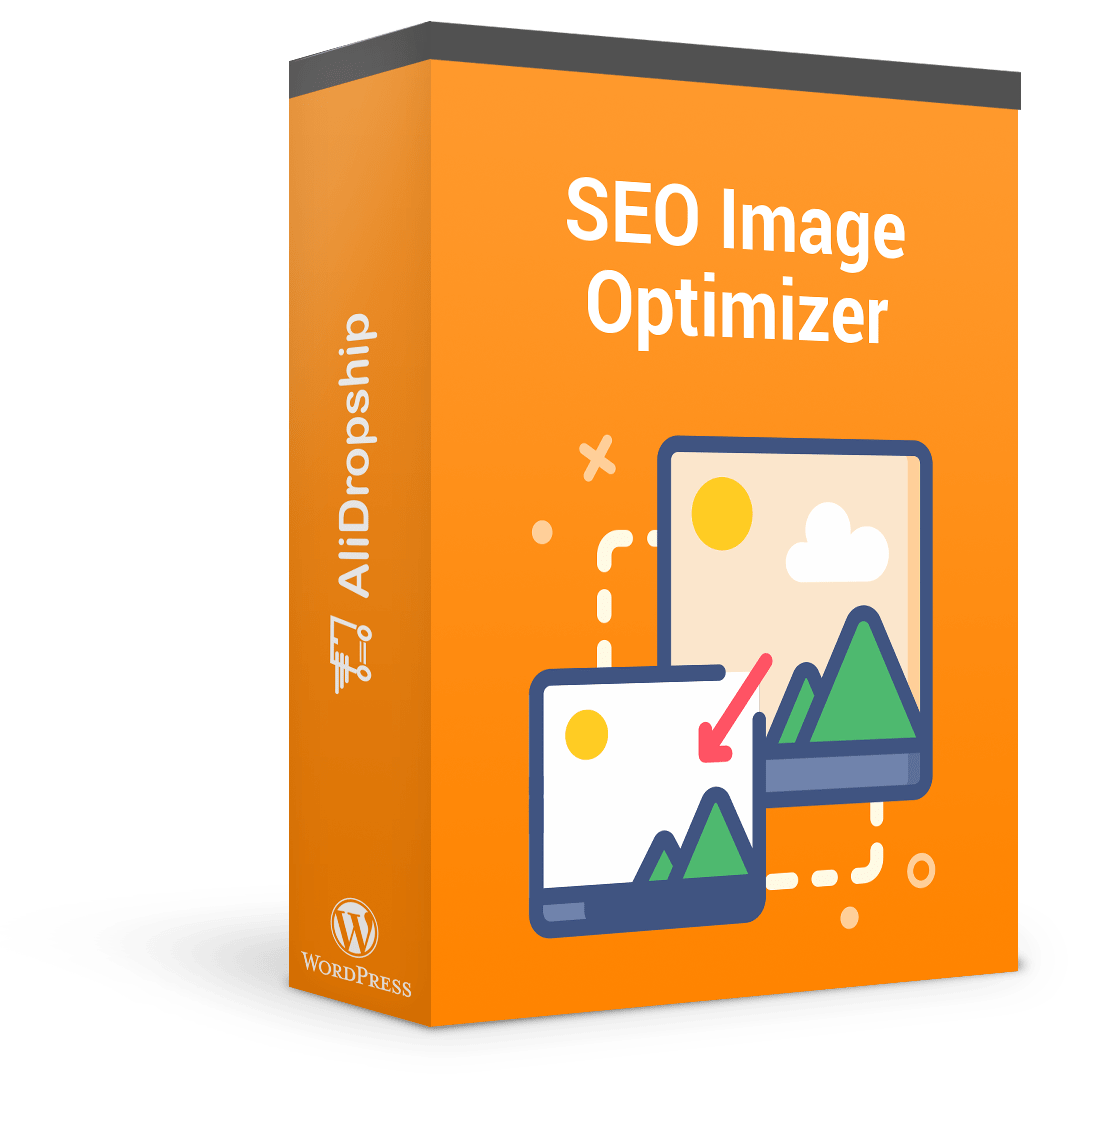 SEO Image Optimizer